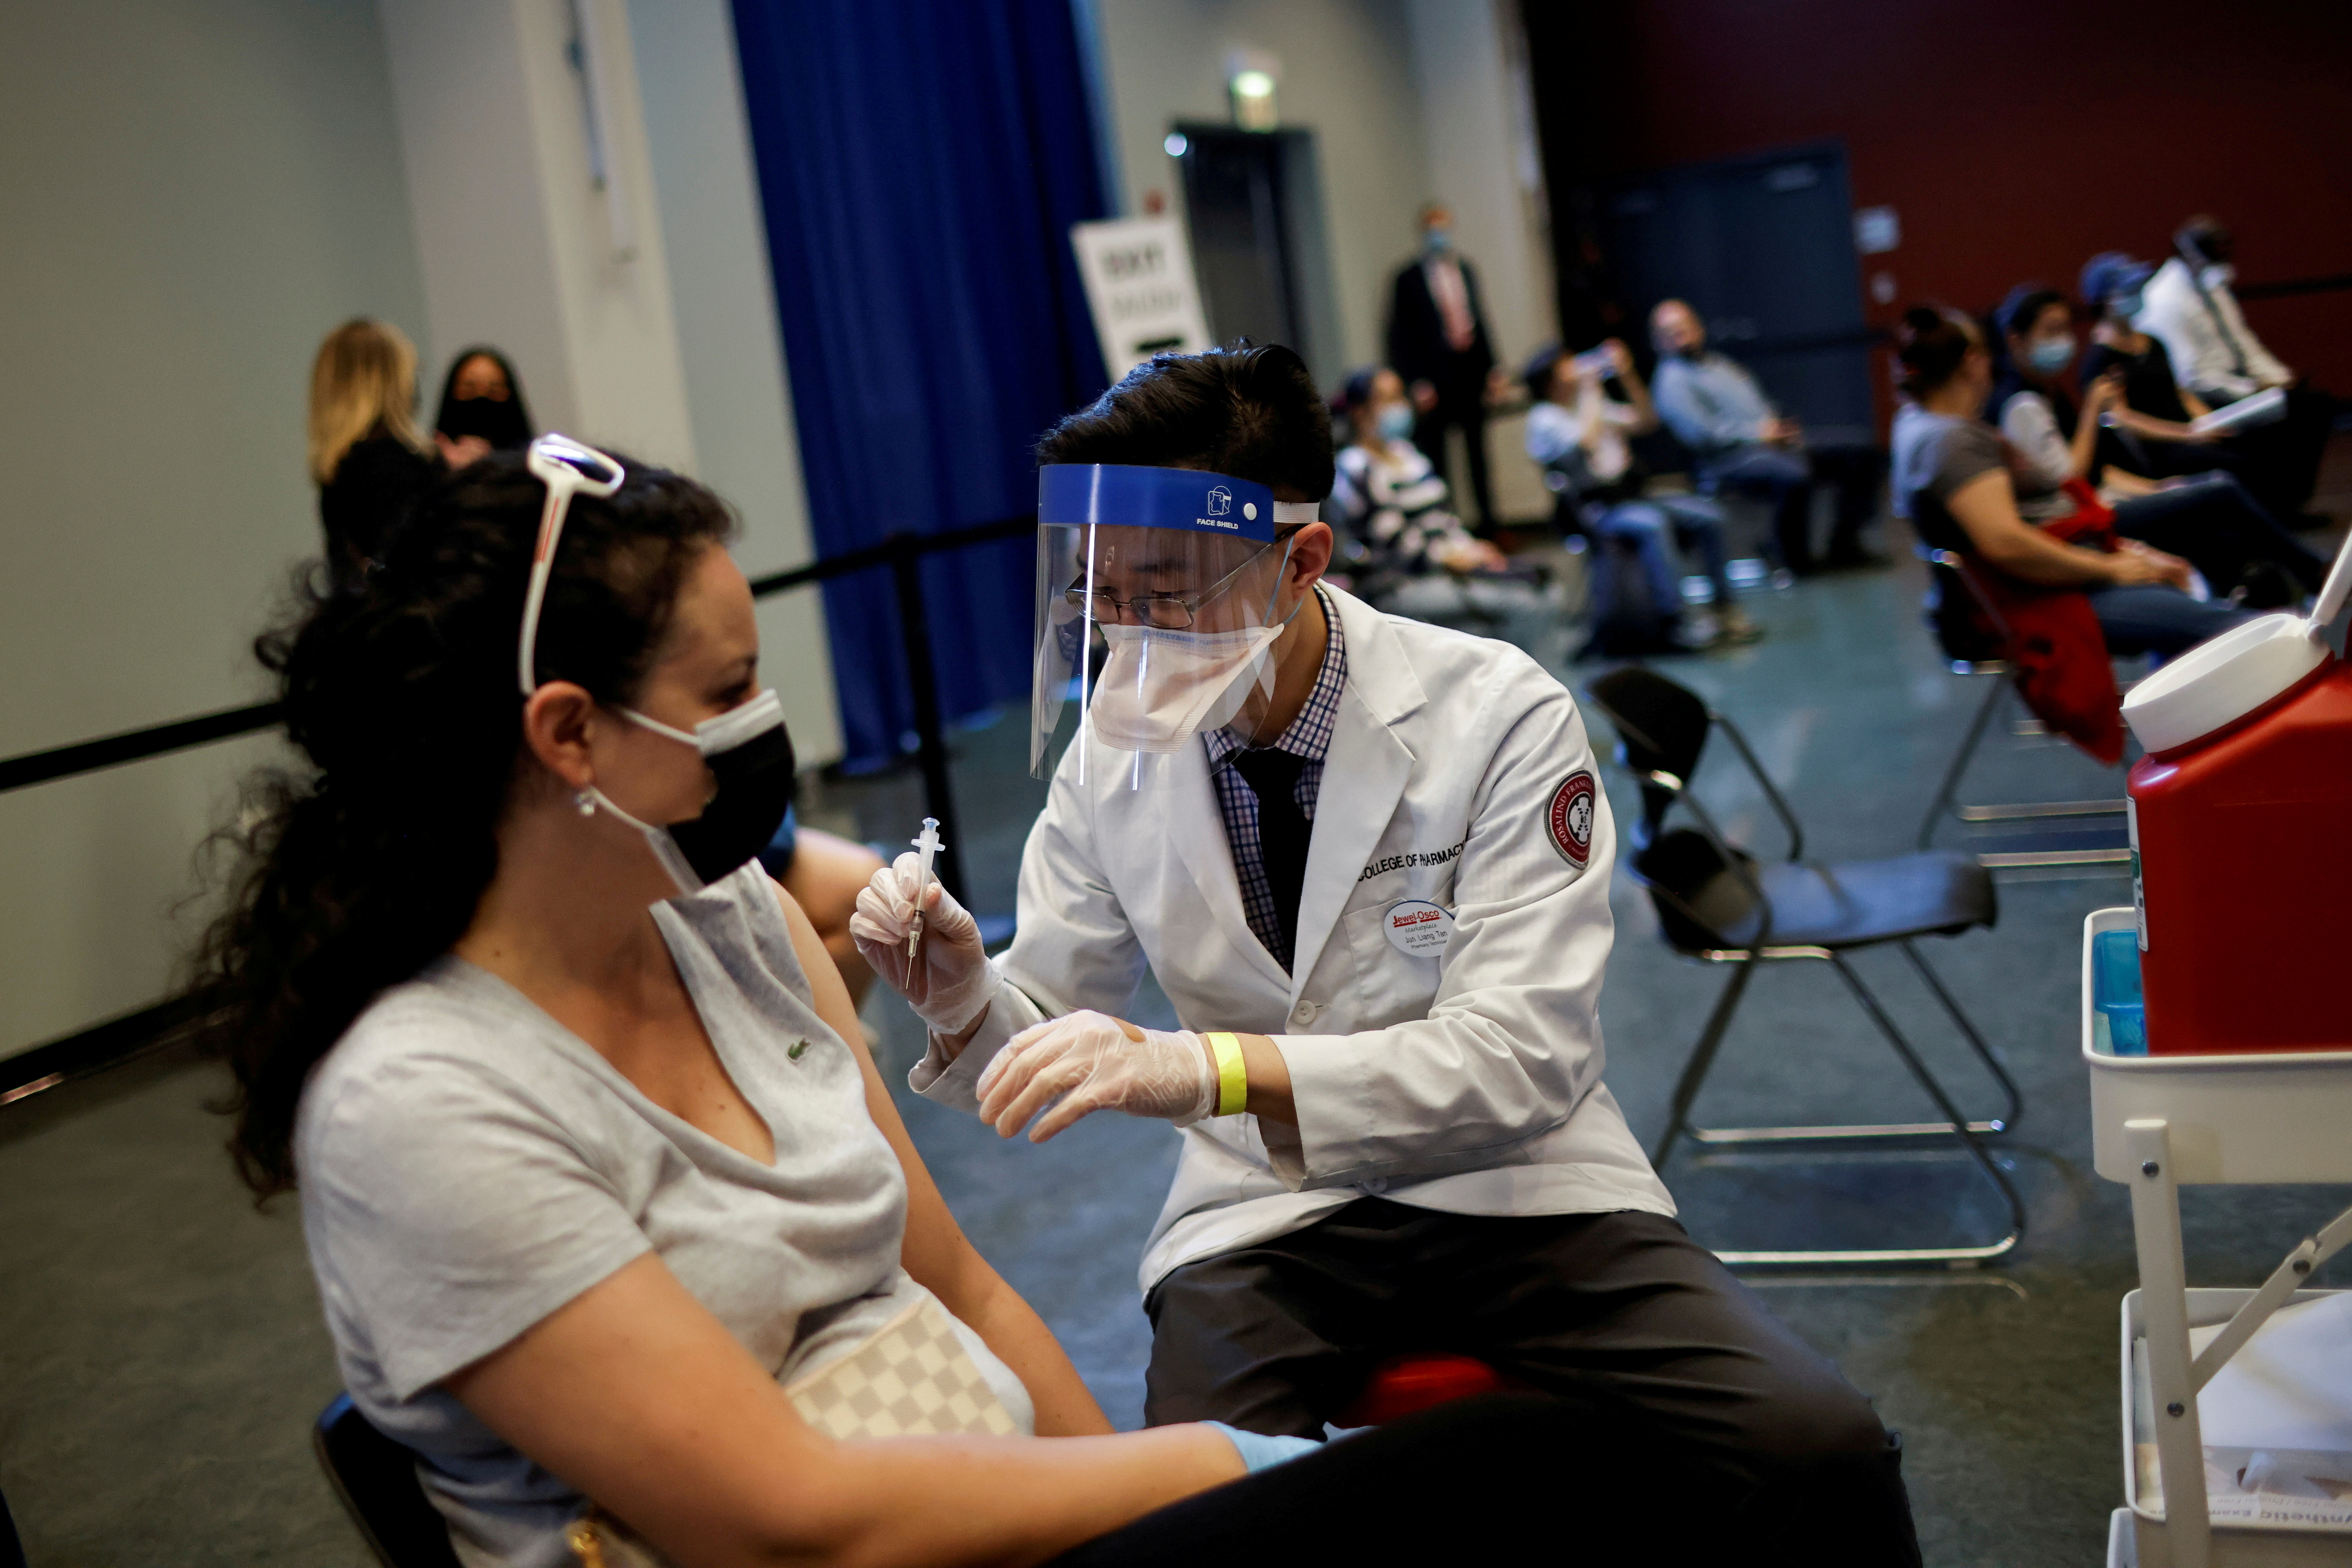 A woman receives a dose of the Johnson & Johnson coronavirus disease (COVID-19) vaccine at vaccination center in Chinatown, in Chicago, Illinois, U.S., April 6, 2021. REUTERS/Carlos Barria